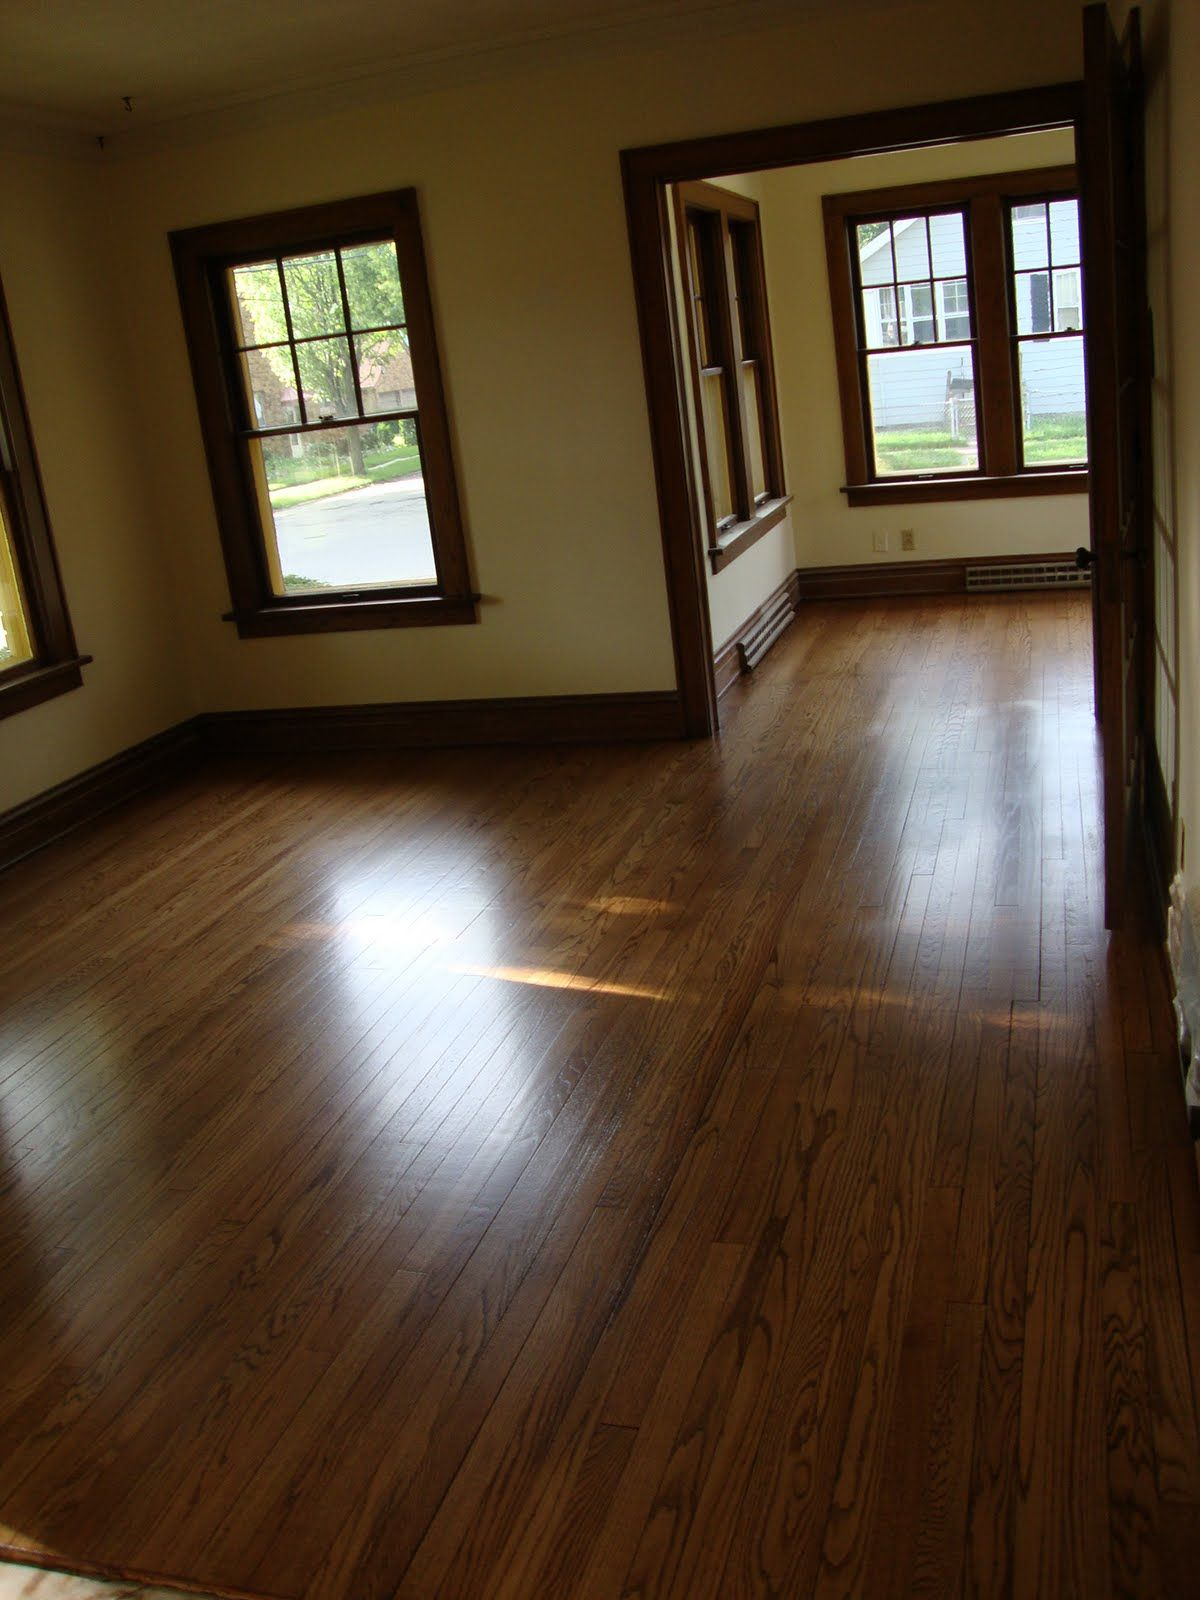 Living Room Colors For Dark Wood Floors dark wood trim with hardwood floors and lighter, not-sterile white